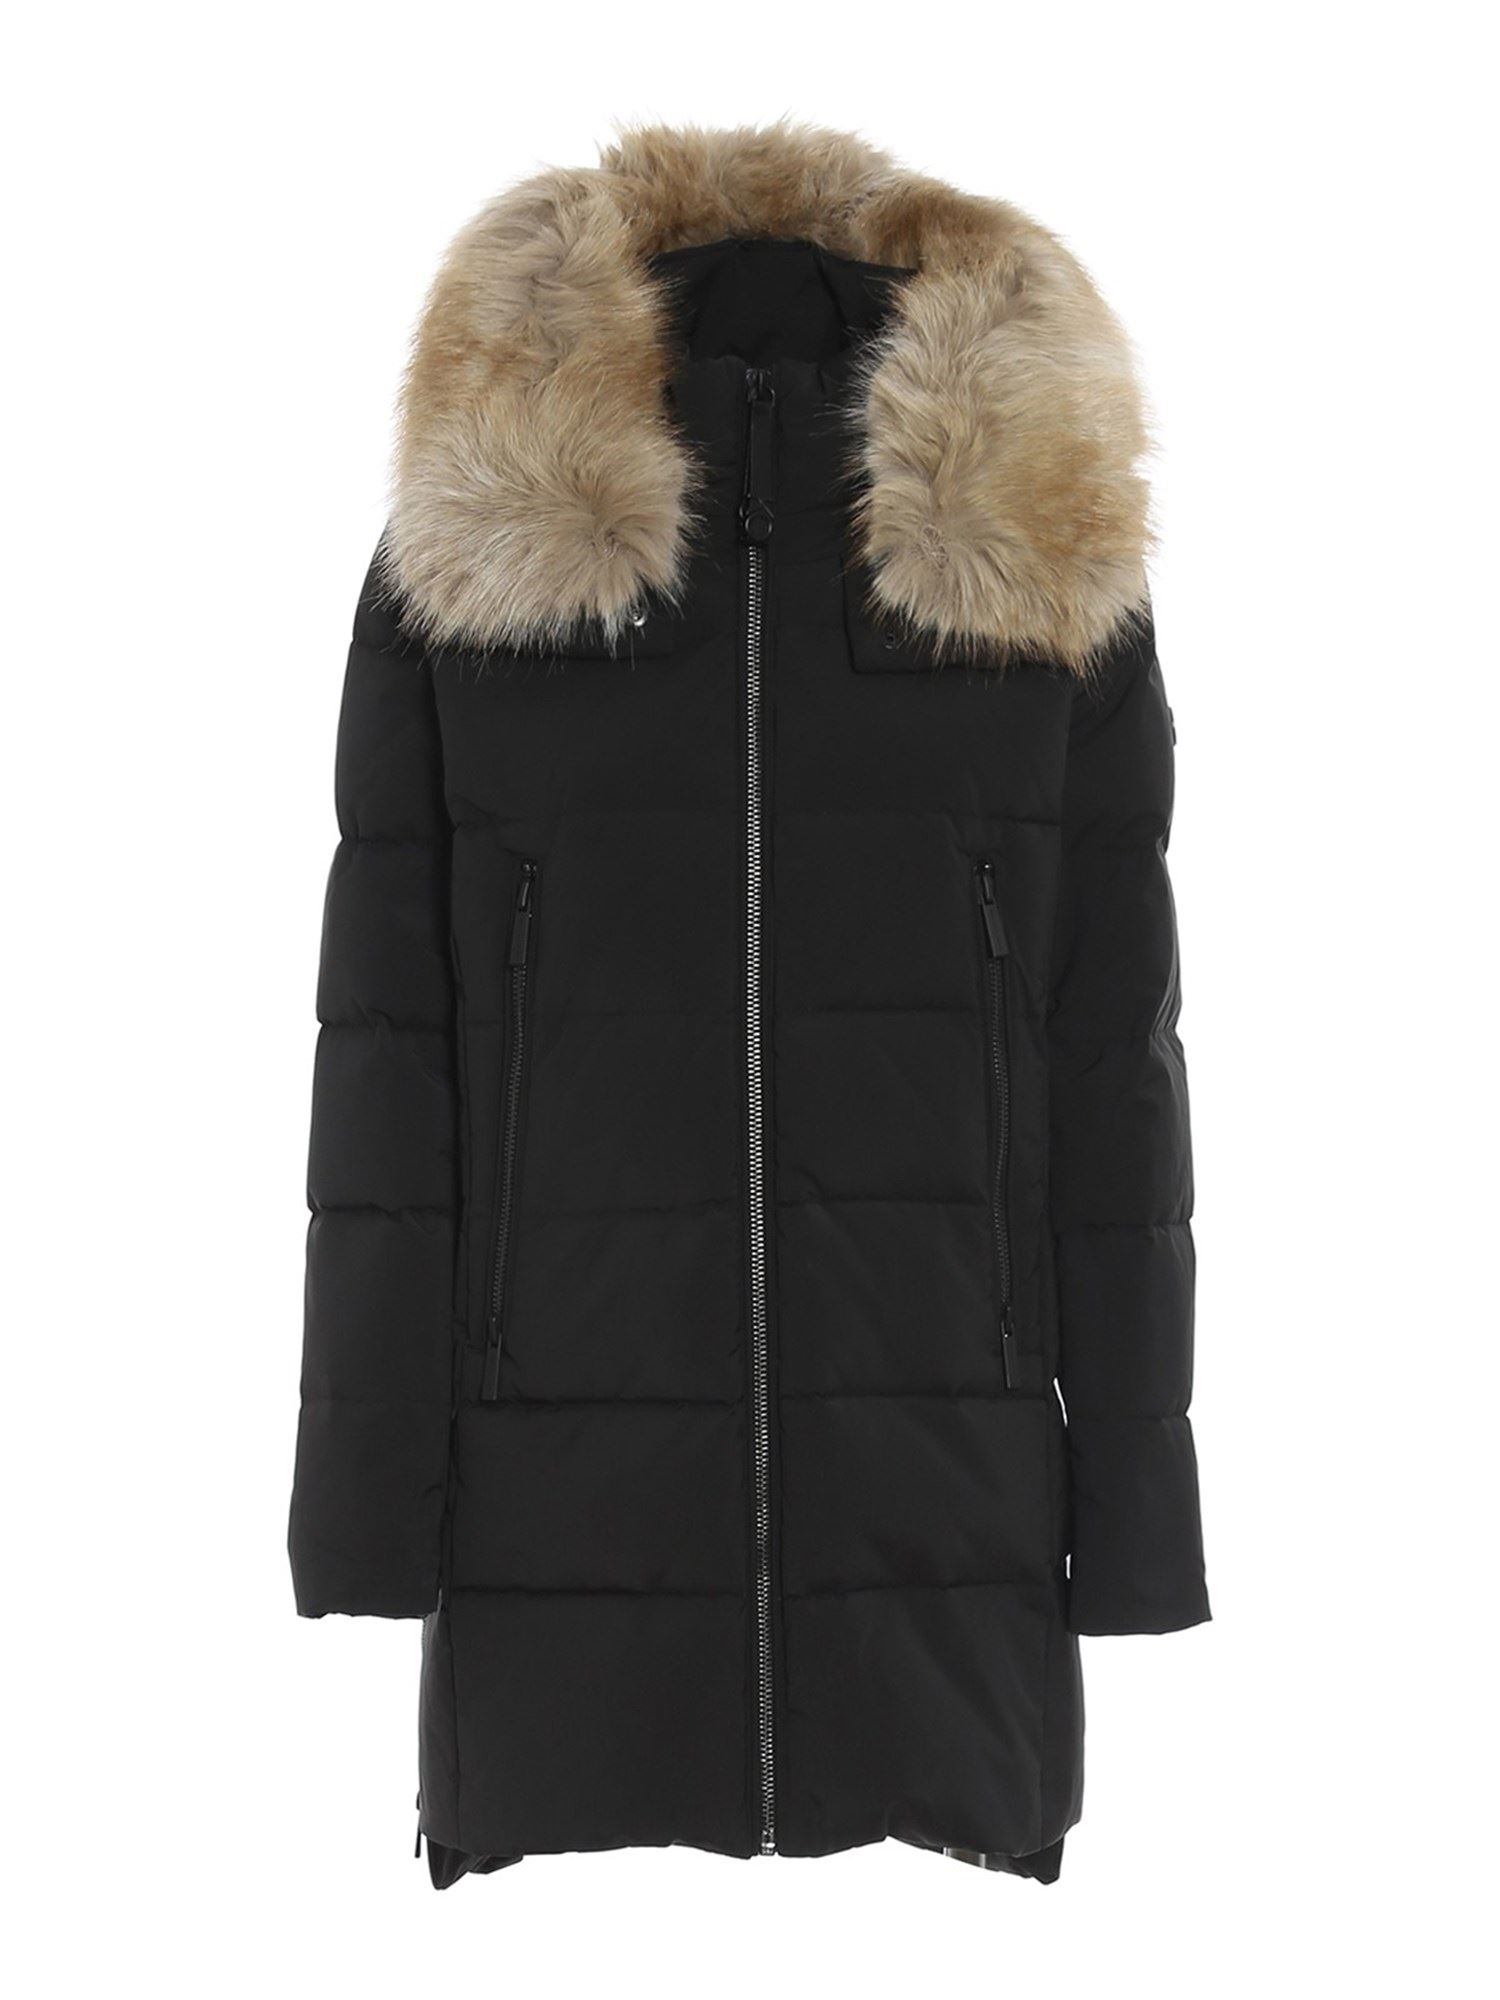 Michael Kors FAUX FUR INSERT PADDED COAT